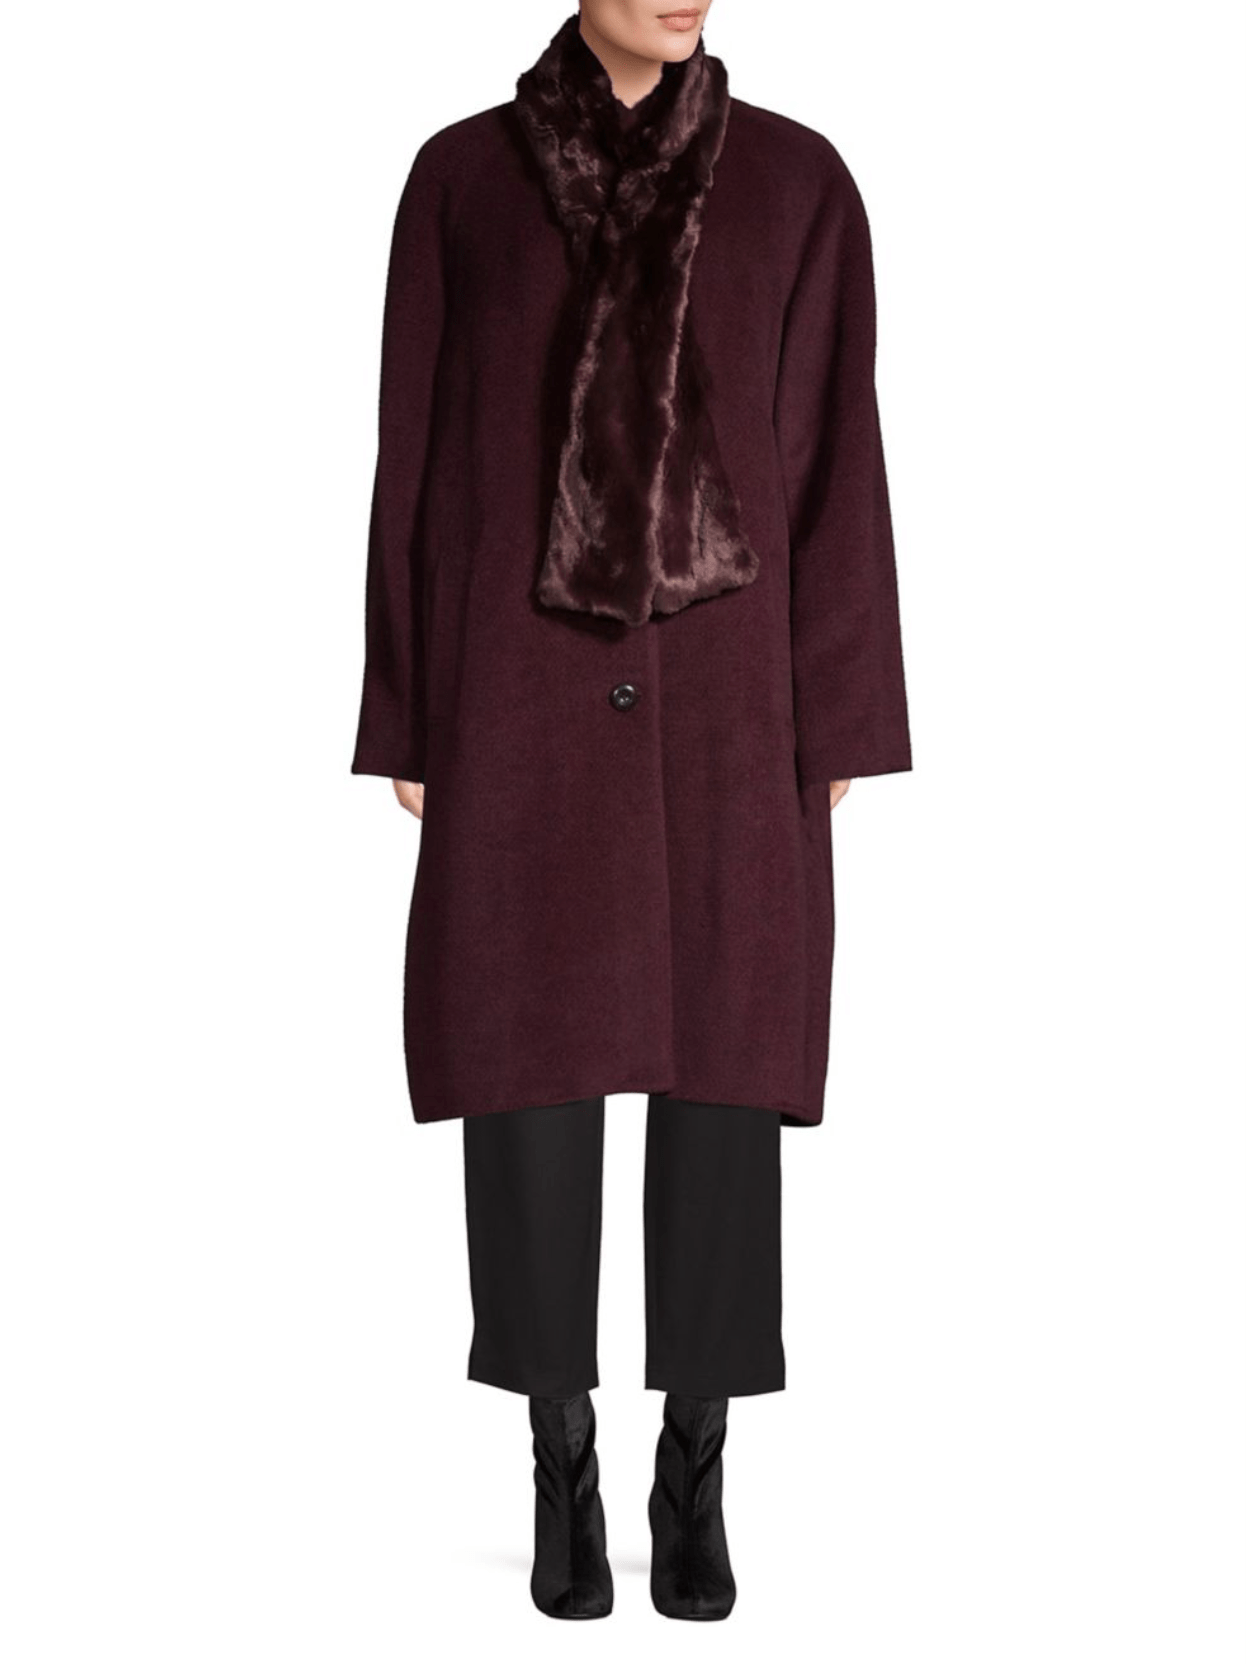 Jones New York Wool-Blend Coat with Faux Fur Scarf